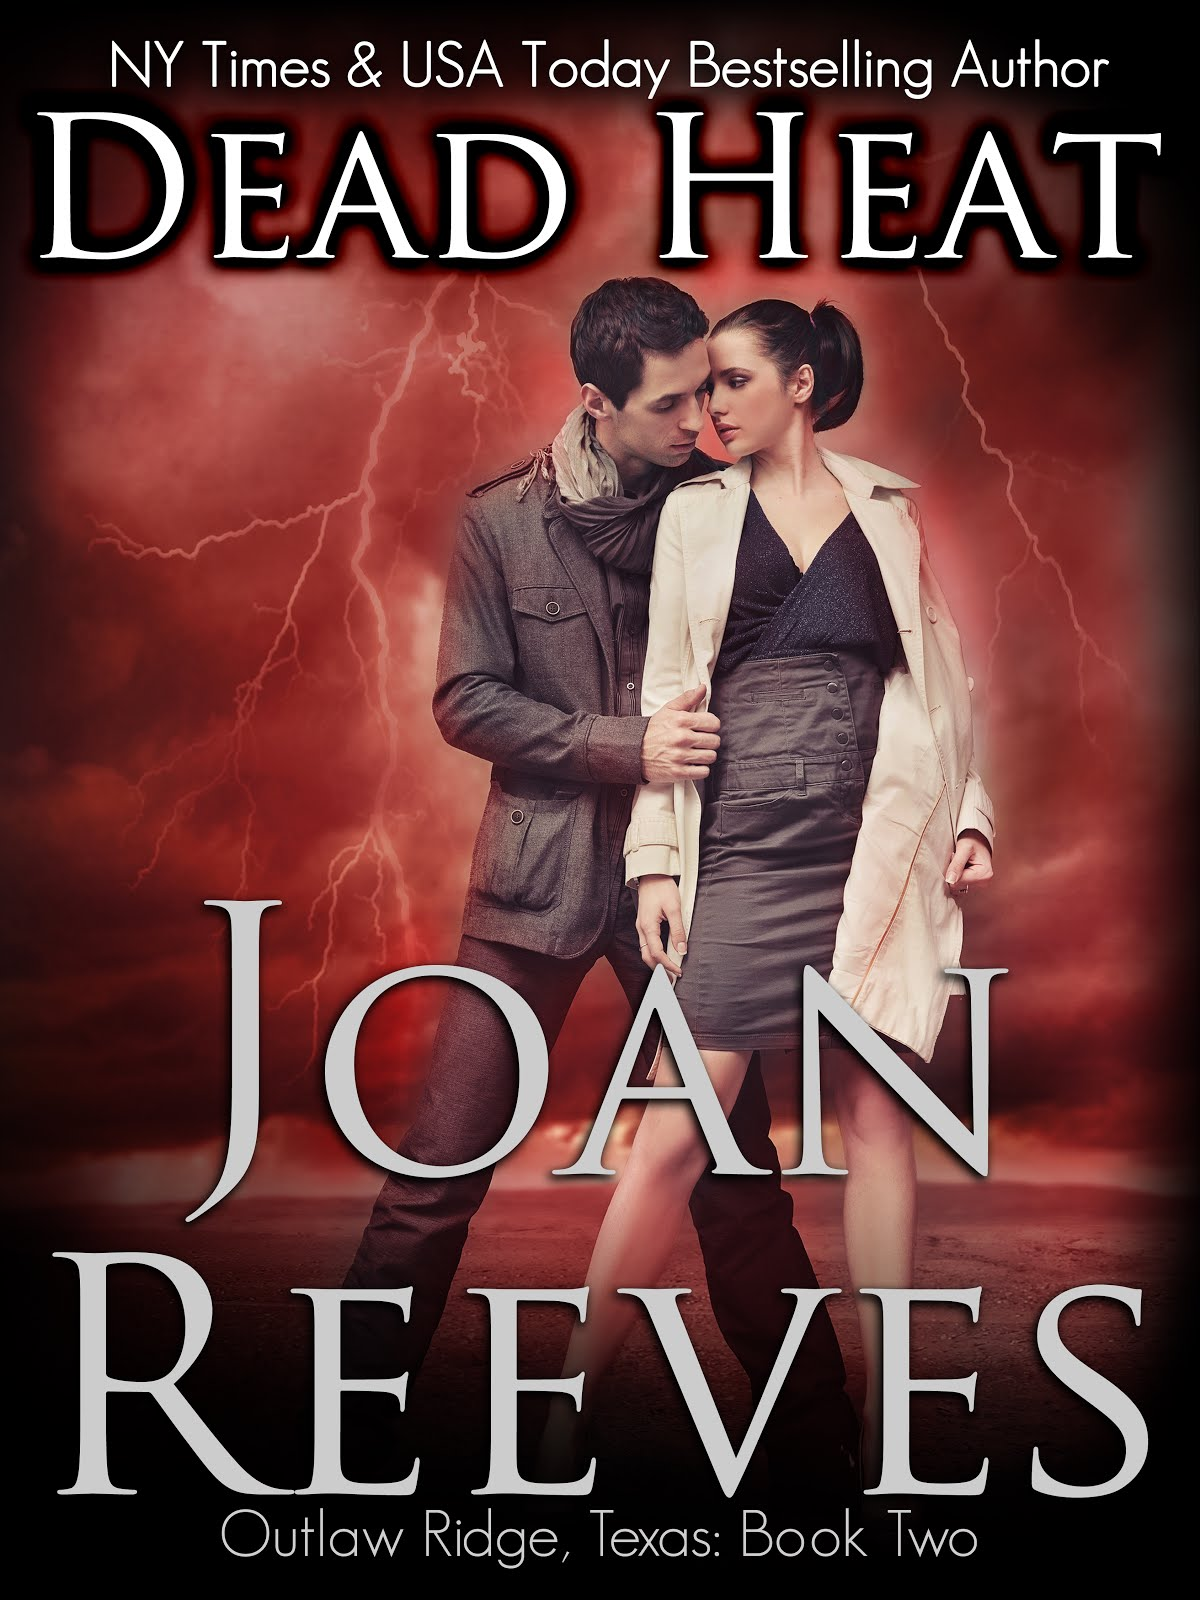 <b>Dead Heat: Book 2, Outlaw Ridge, Texas, available August 29!</b>